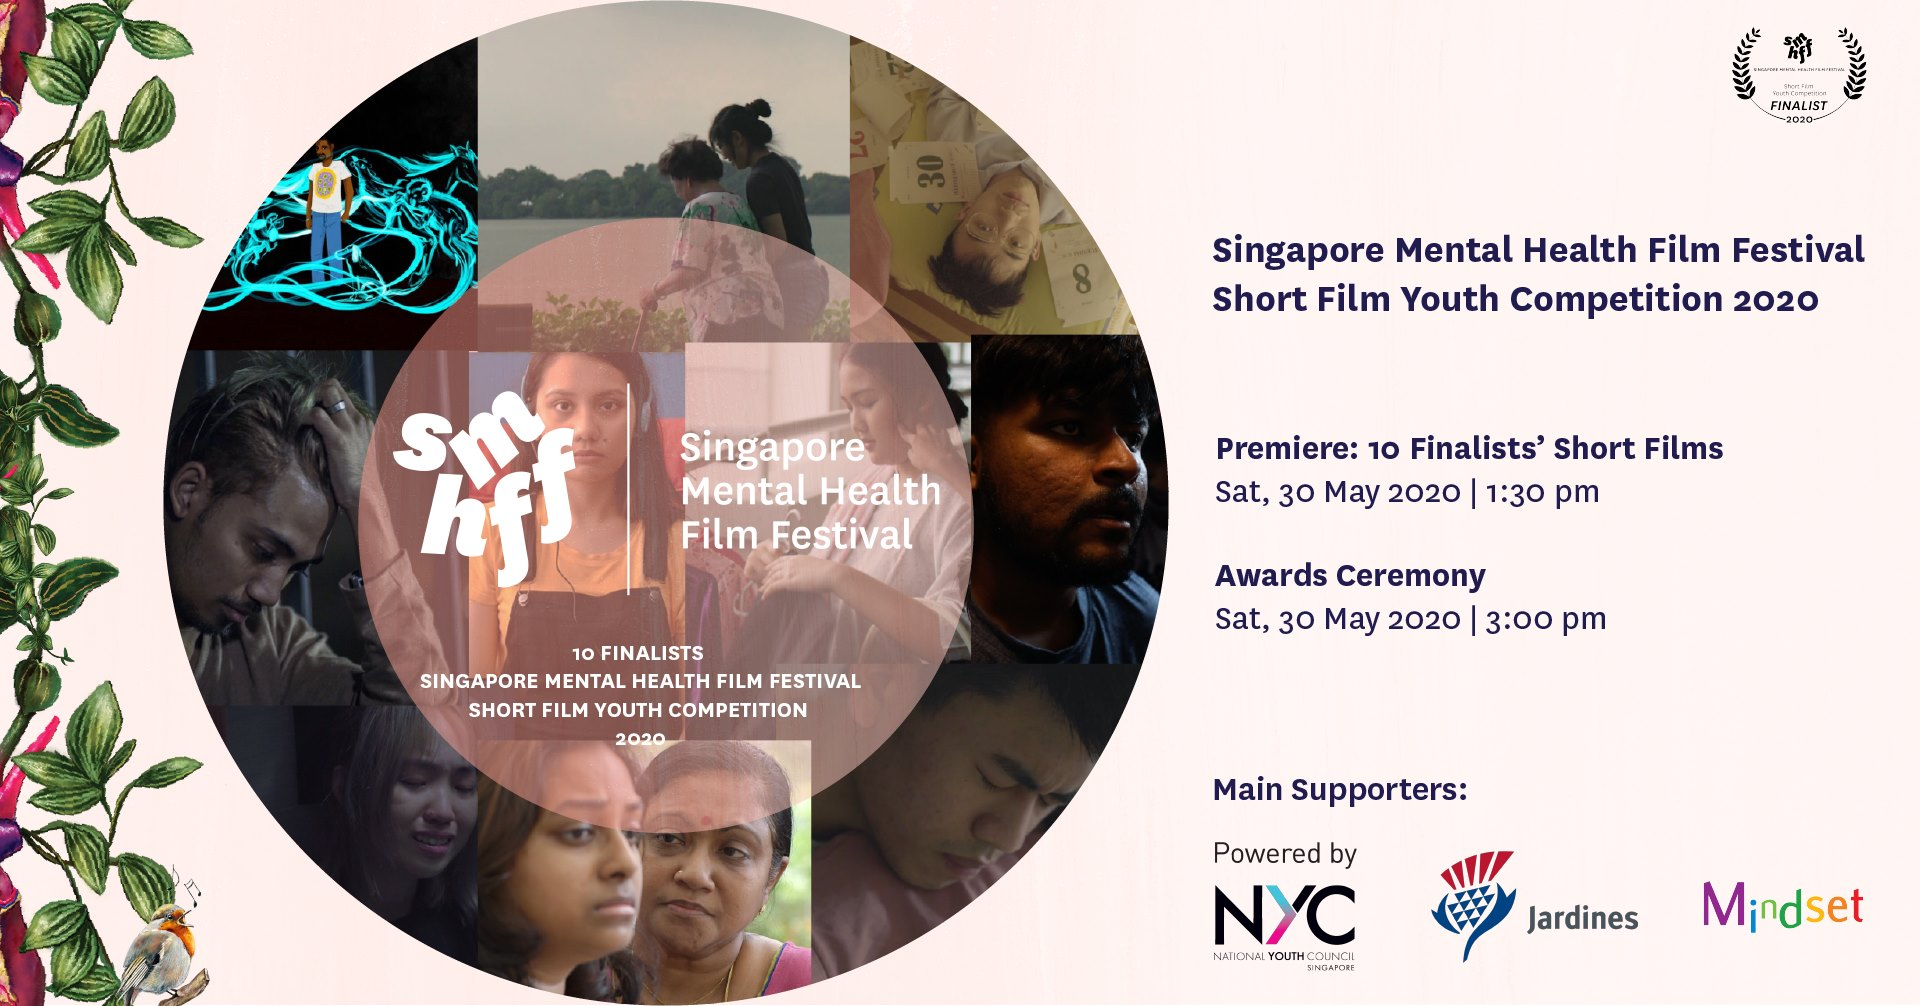 SMHFF Short Film Youth Competition: Premiere & Awards Ceremony